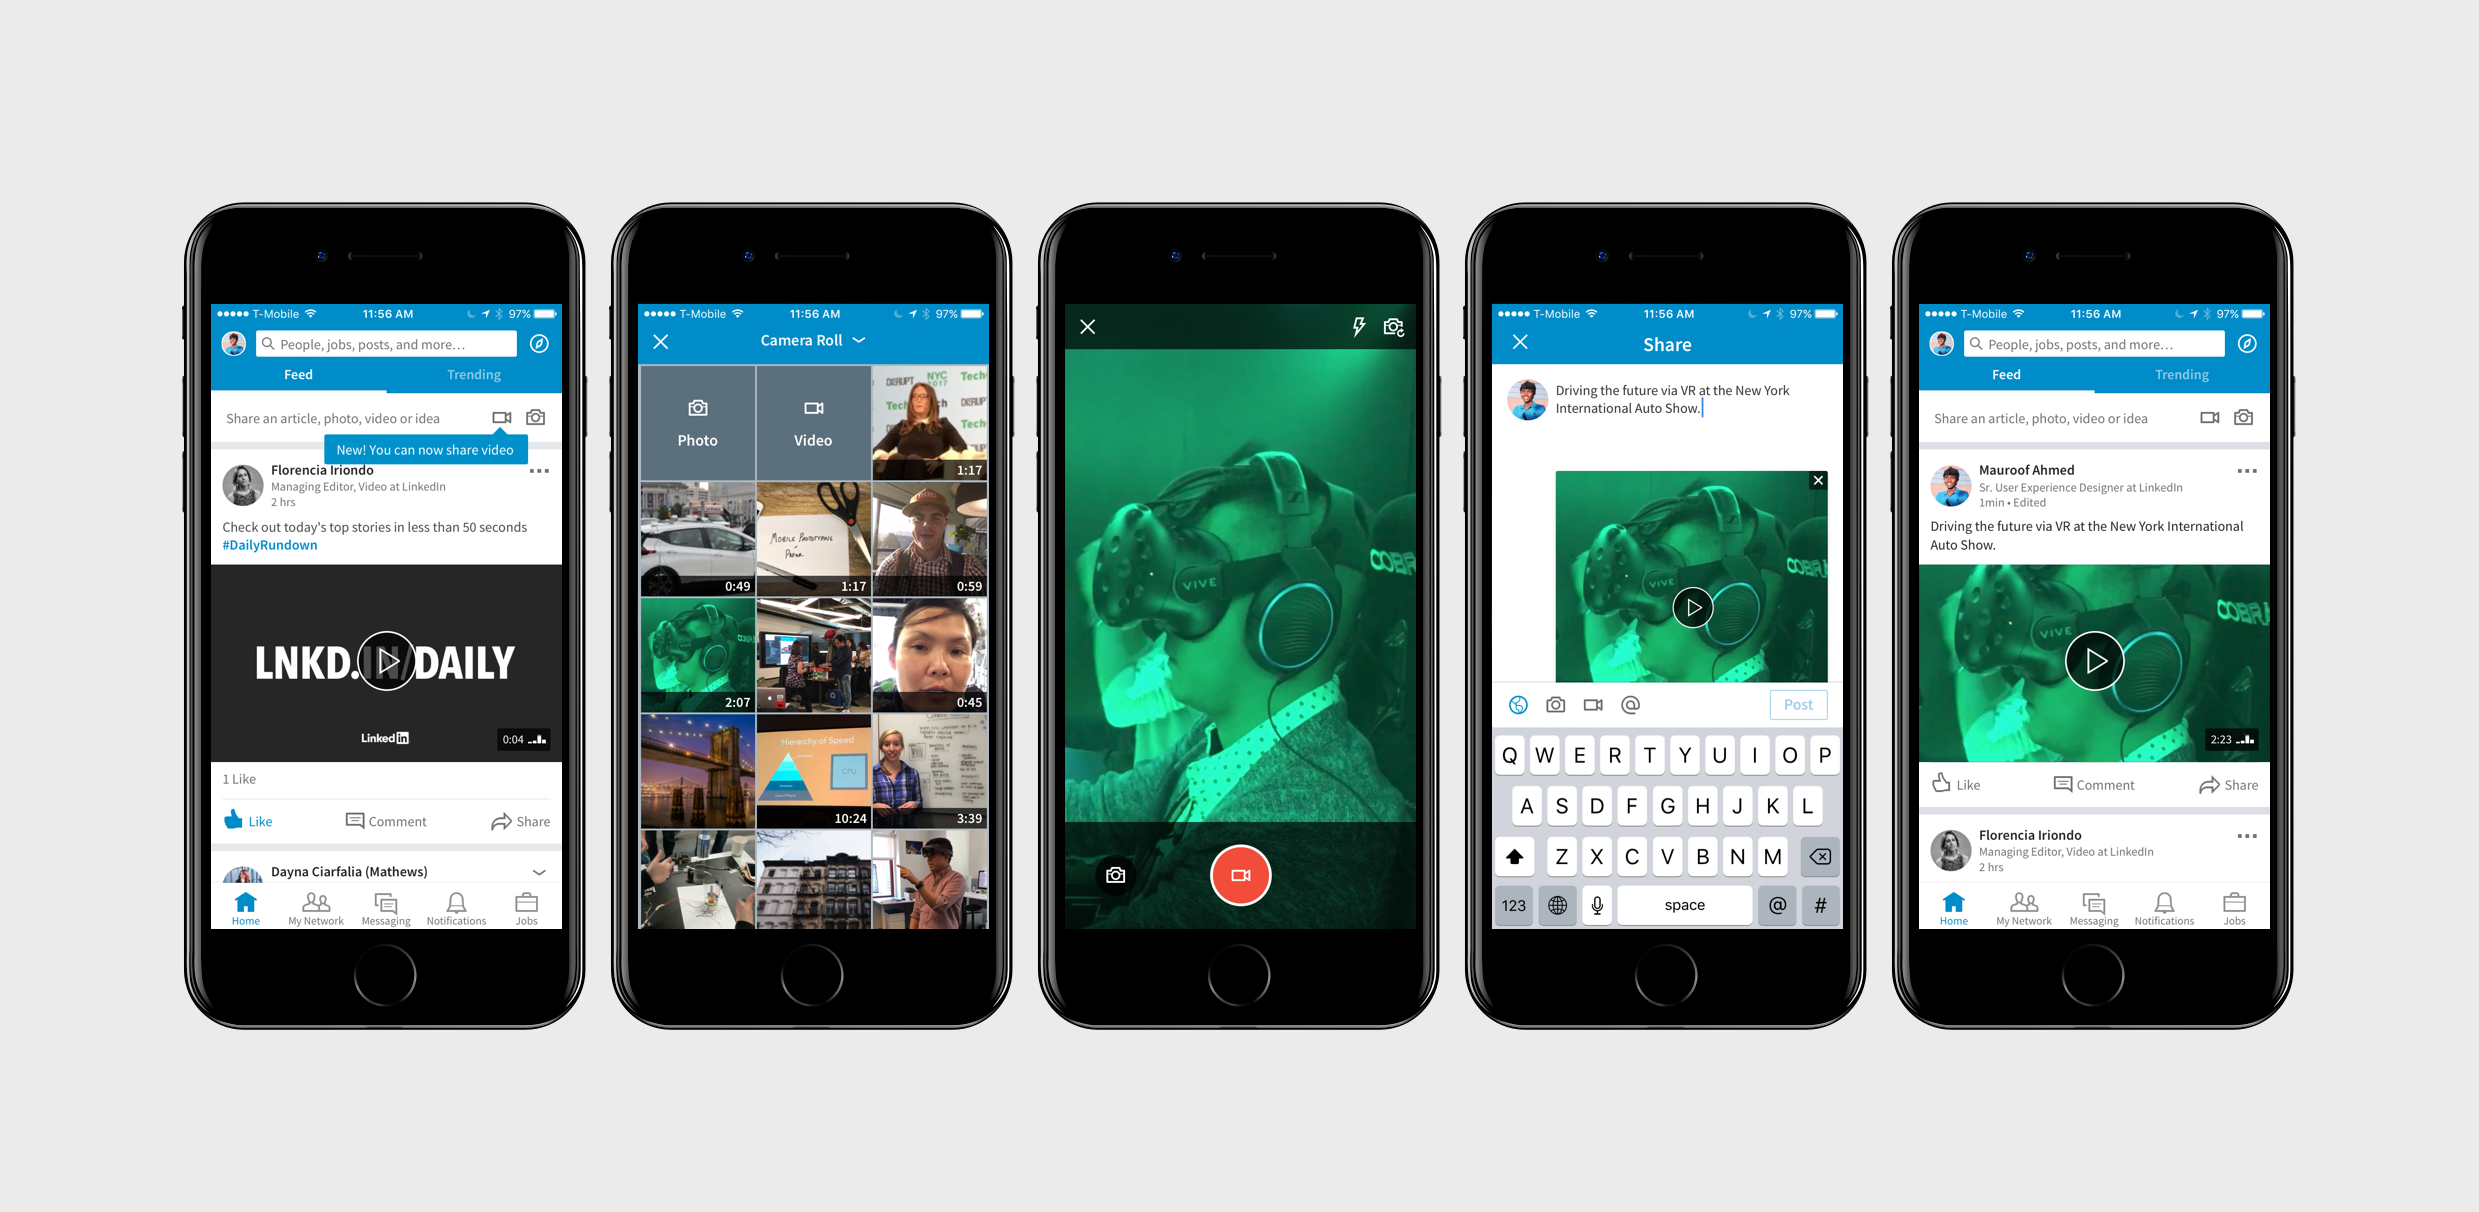 LinkedIn's Rolling Out Native Video to All Users | Social Media Today